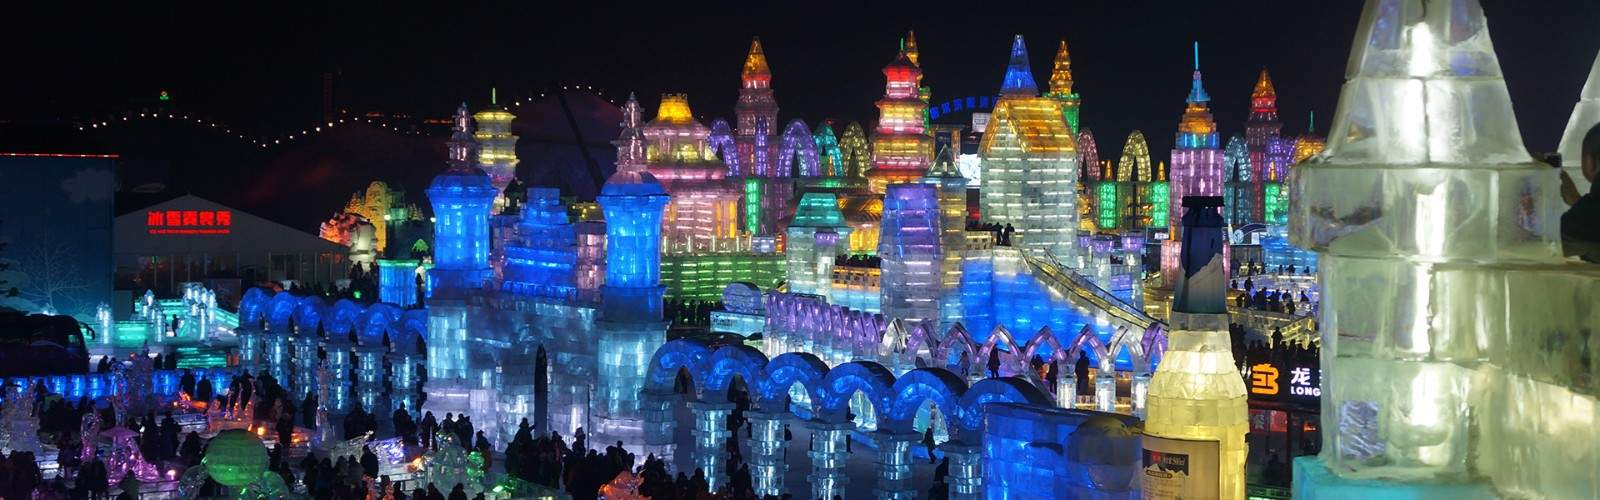 Harbin Ice & Snow Festival Tour | Wendy Wu Tours